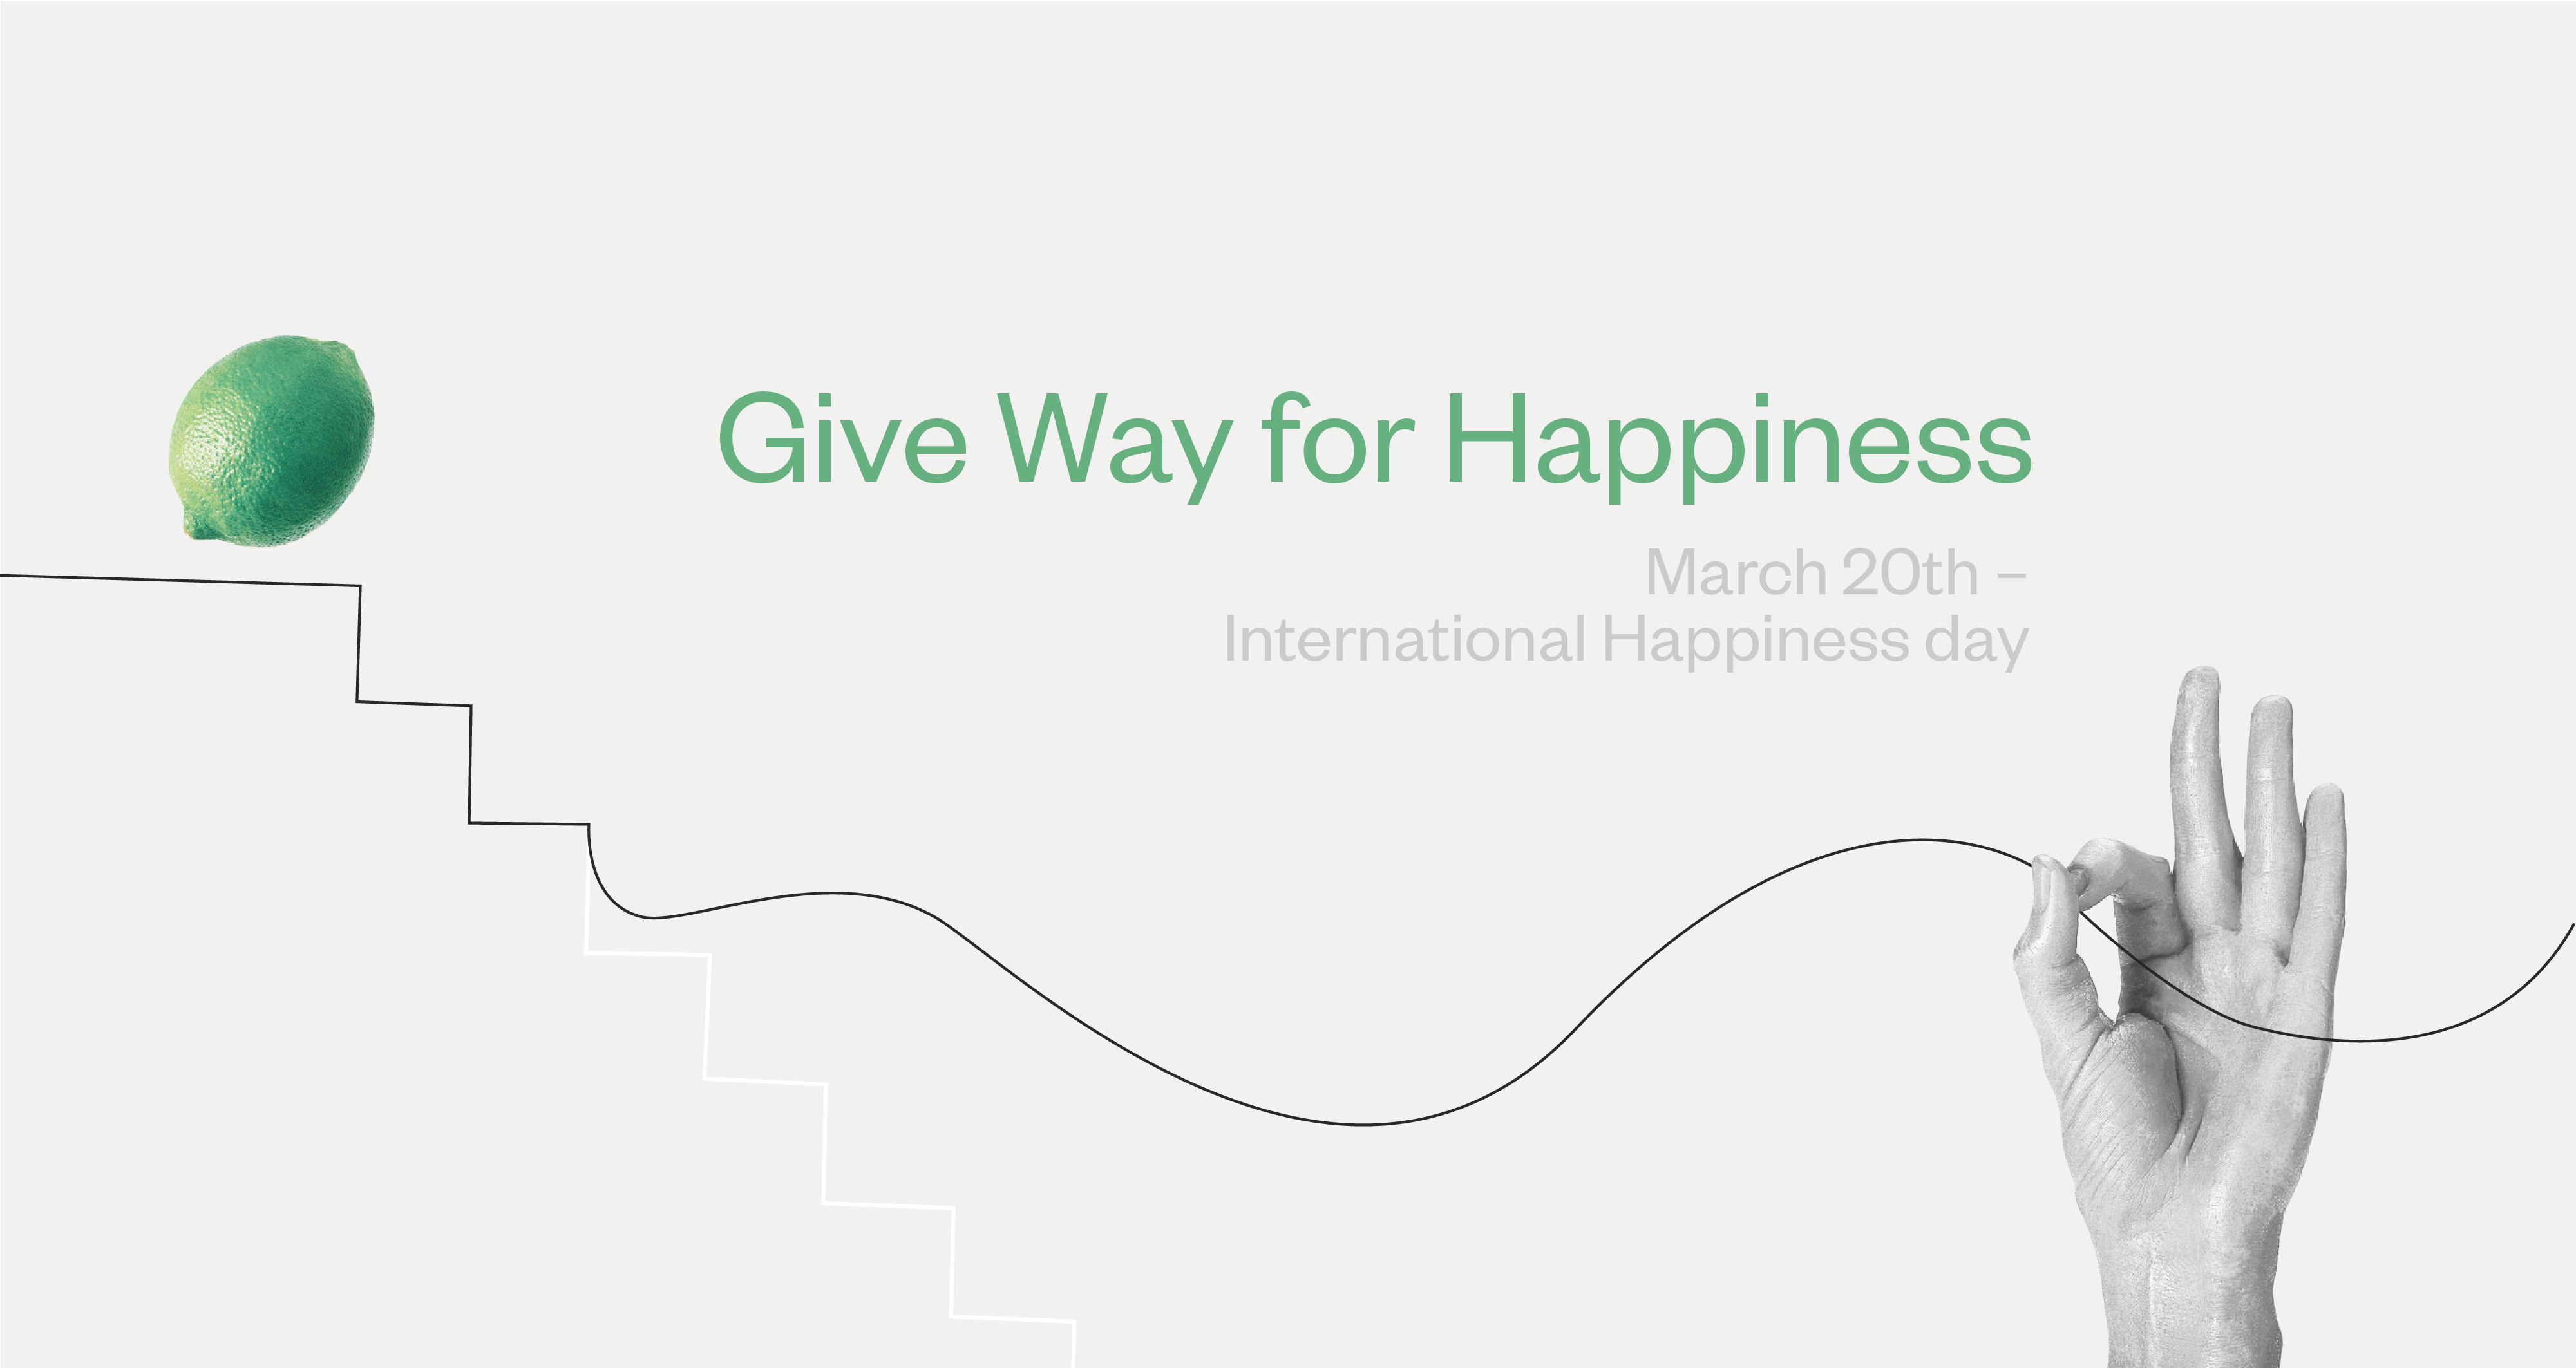 Day of Happiness image